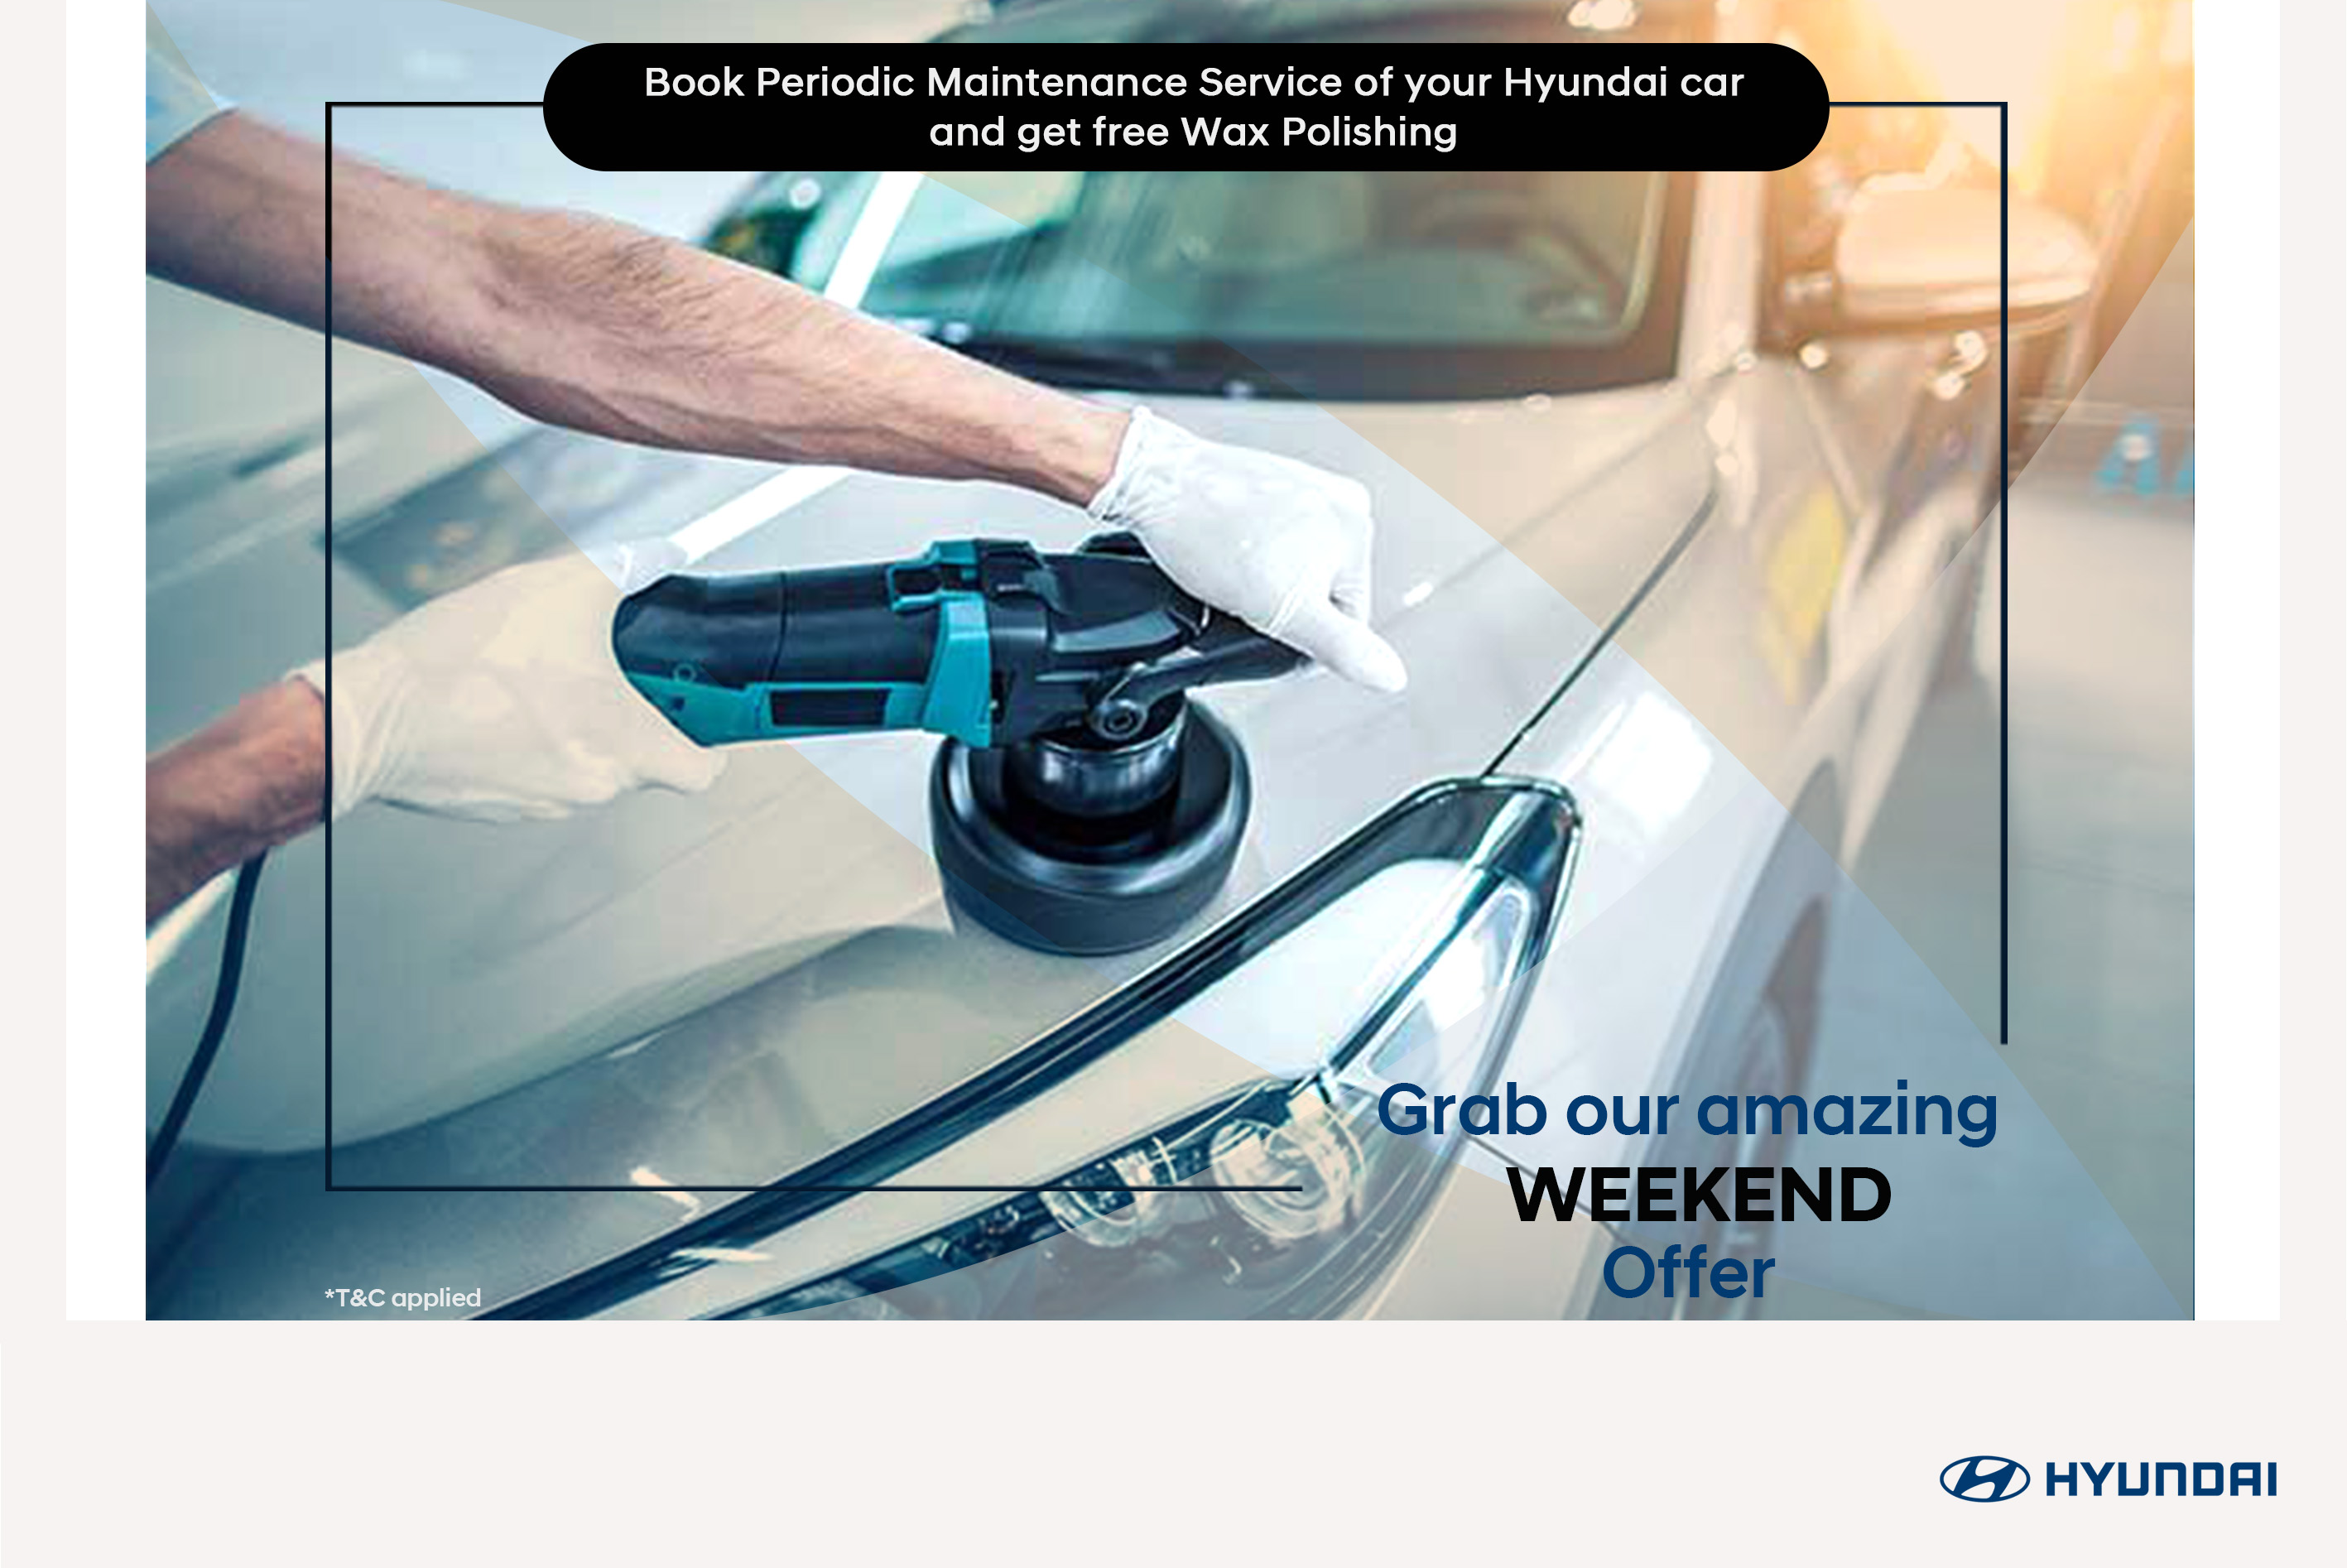 Weekend Service Offer Car Offers